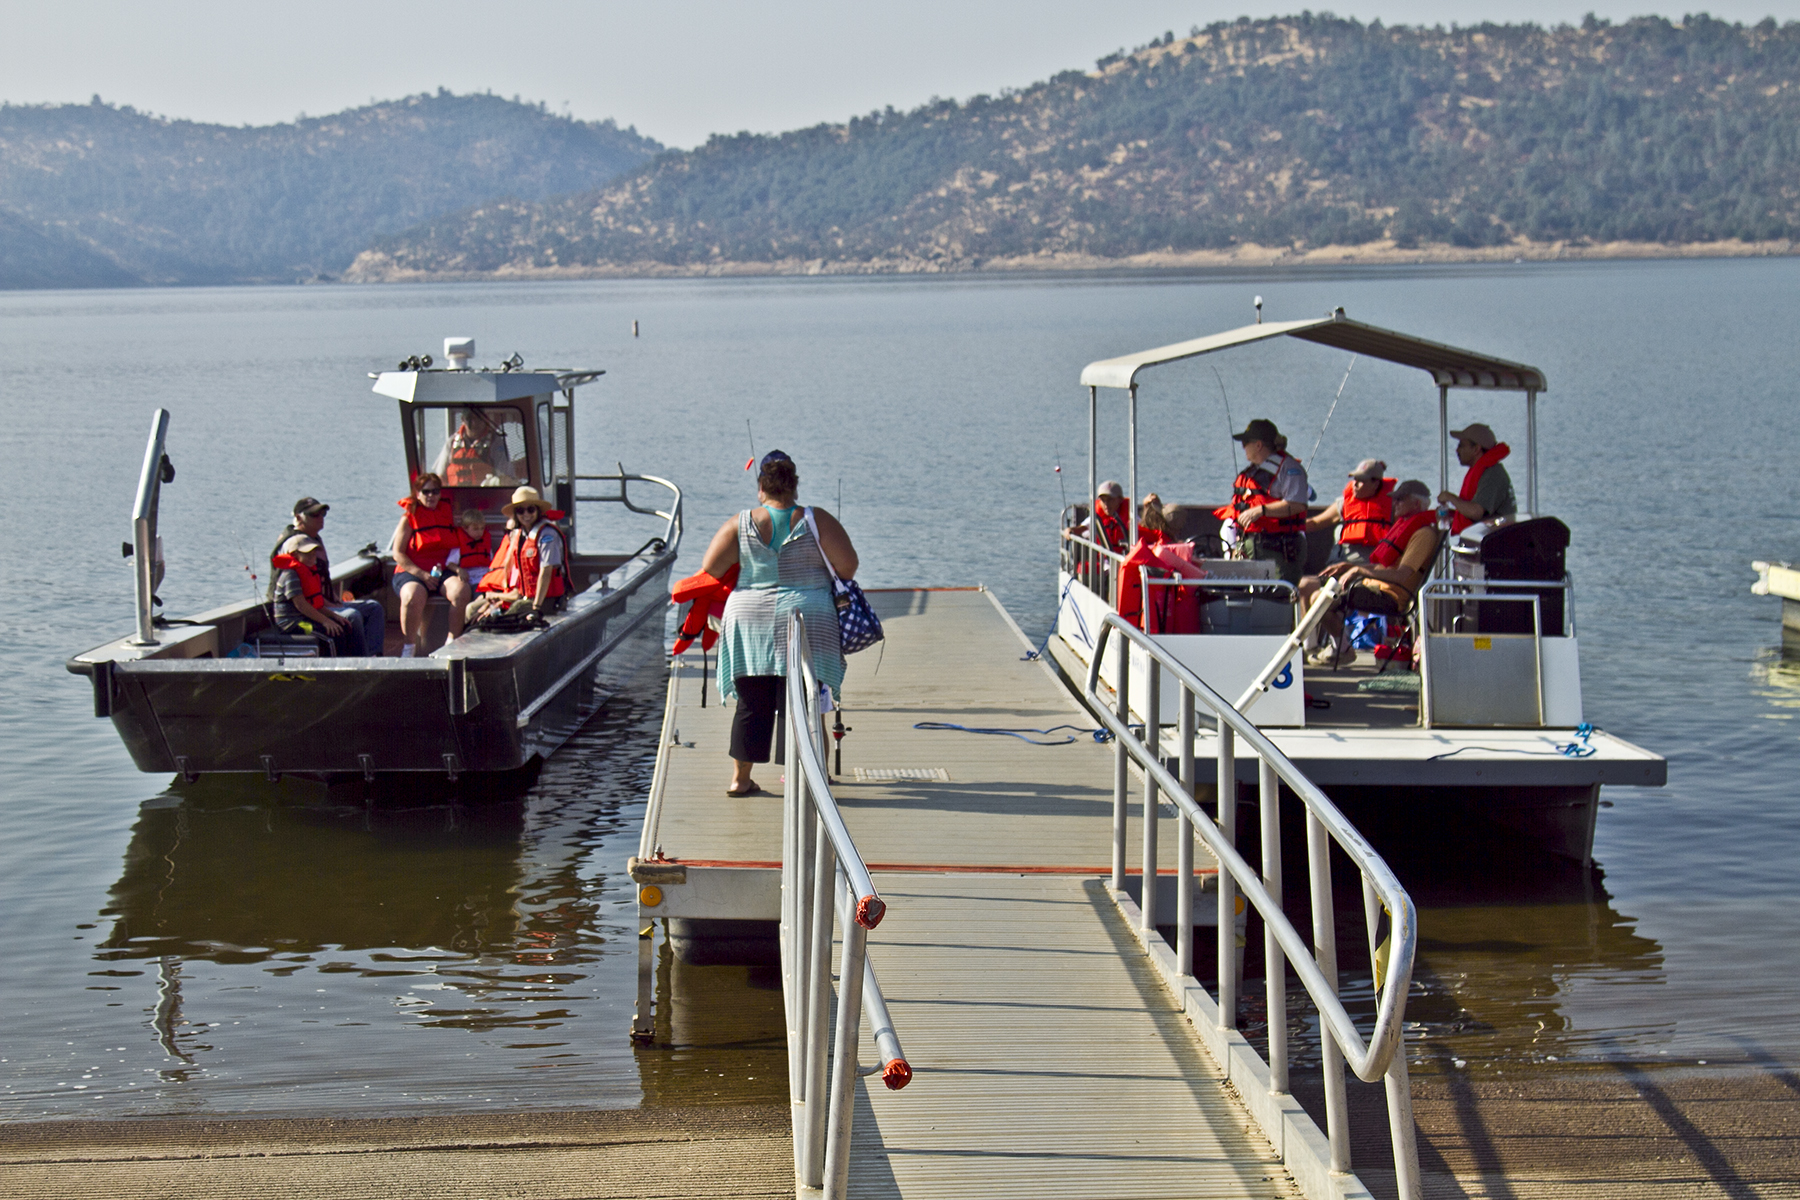 Participants enjoyed spending the day fishing on New Melones Lake, CA.